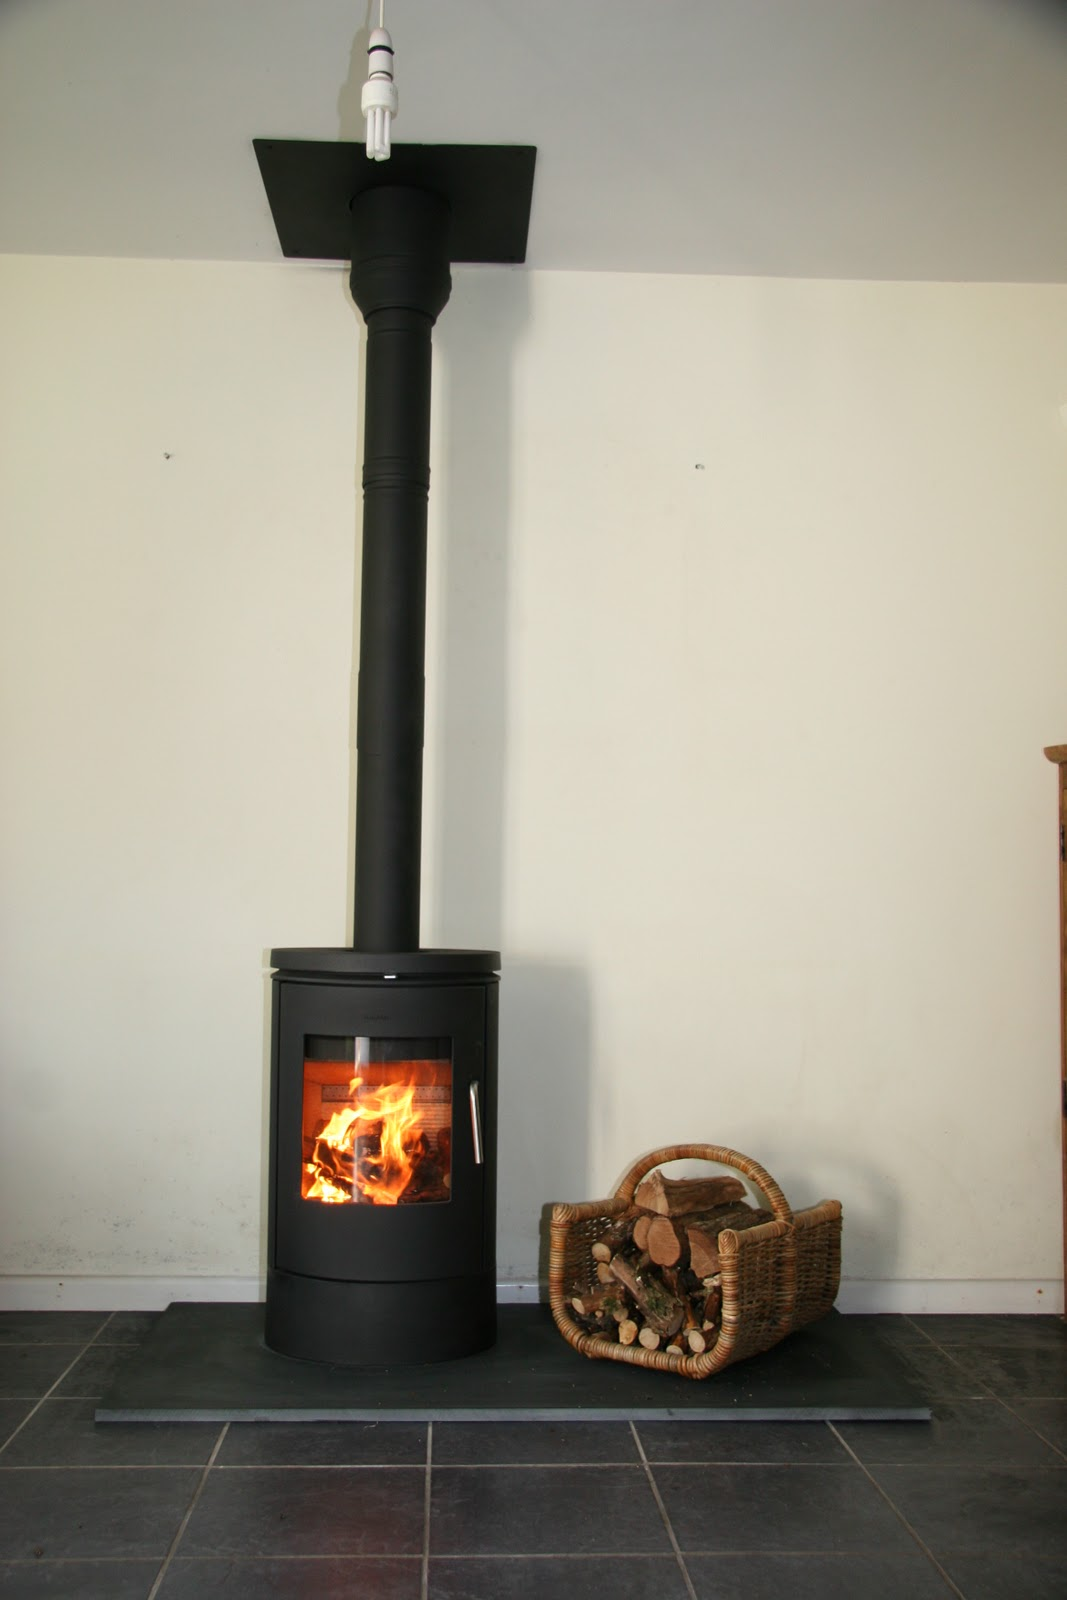 Redwood Stoves Ltd Cornwall: Morso 6140 wood burning stove